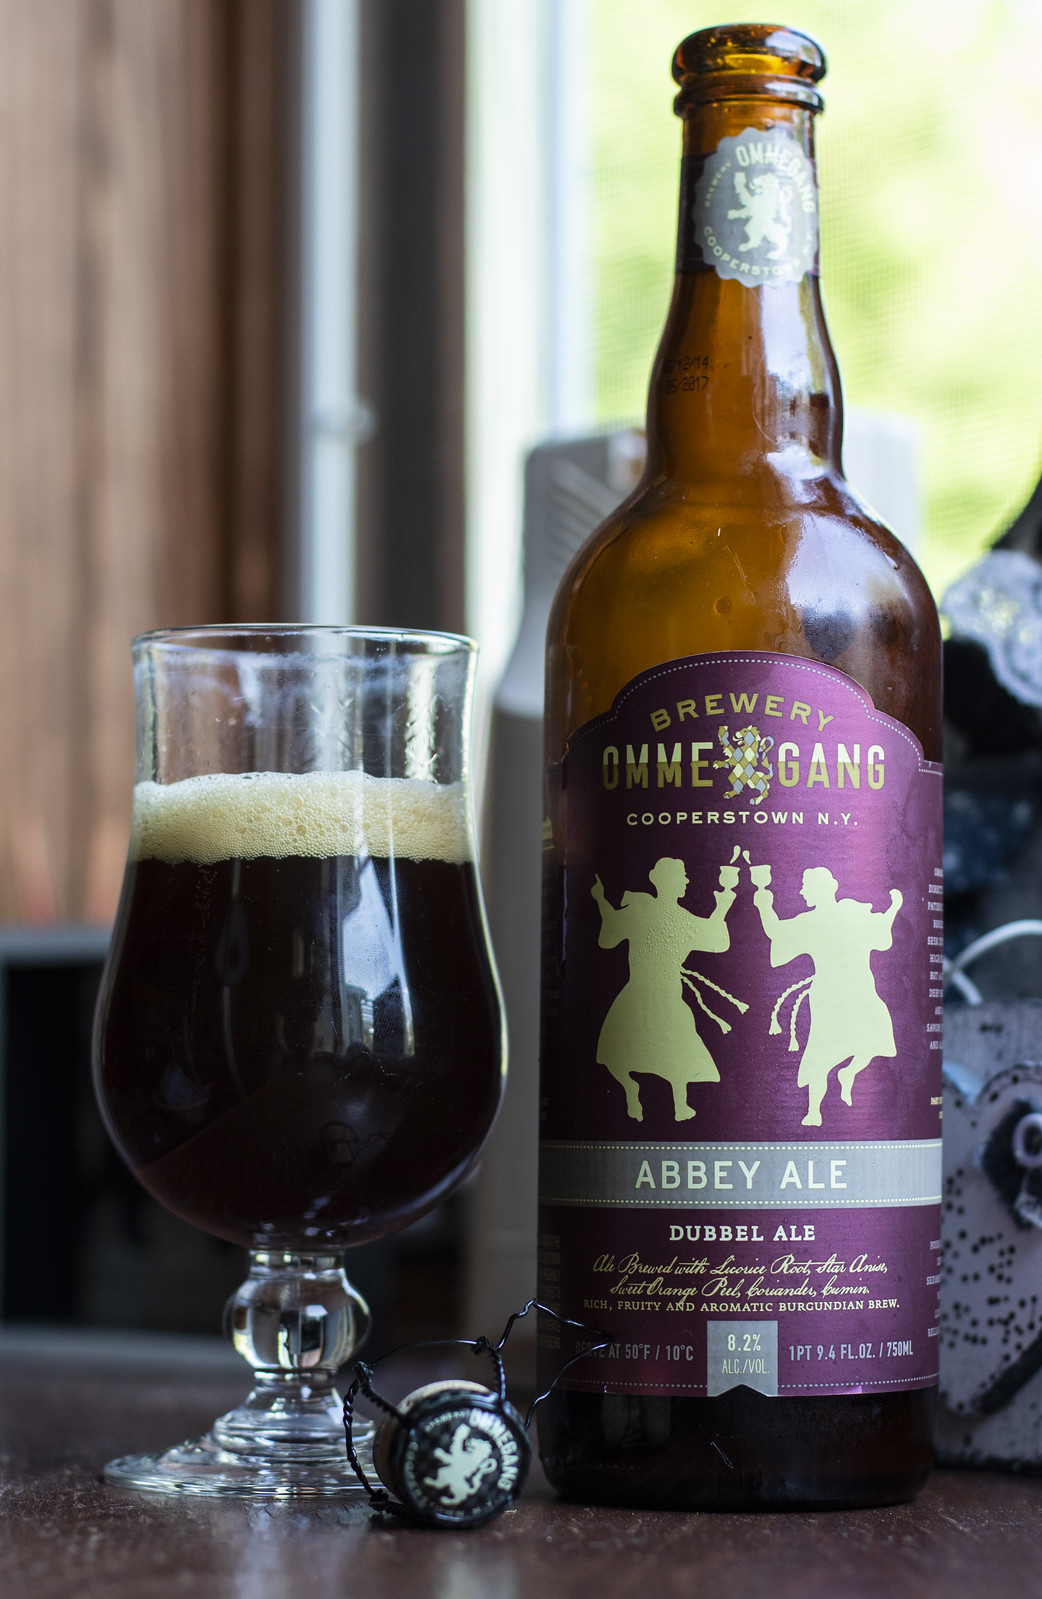 Brewery Ommegang Abbey Ale (Dubbel Ale)